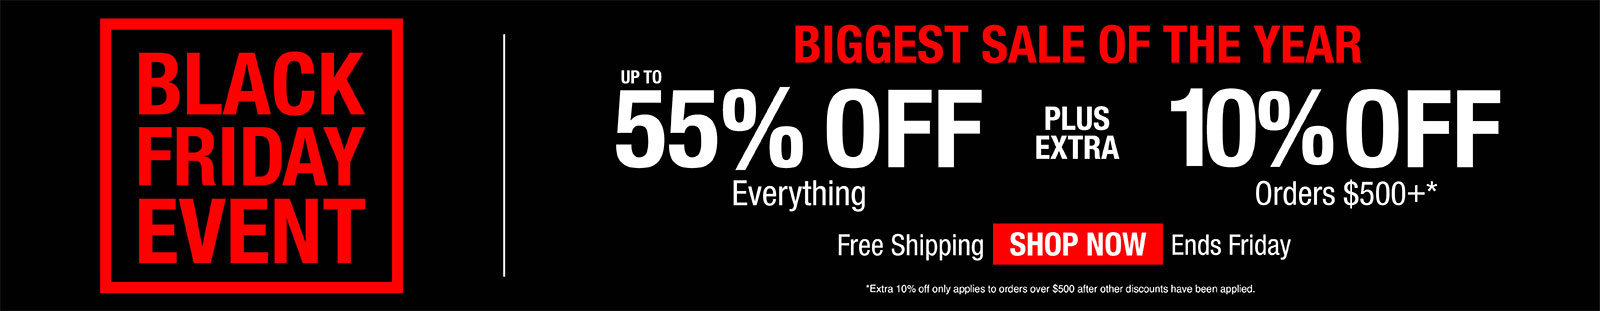 Up to 55% off everything plus extra 10% off orders $500+